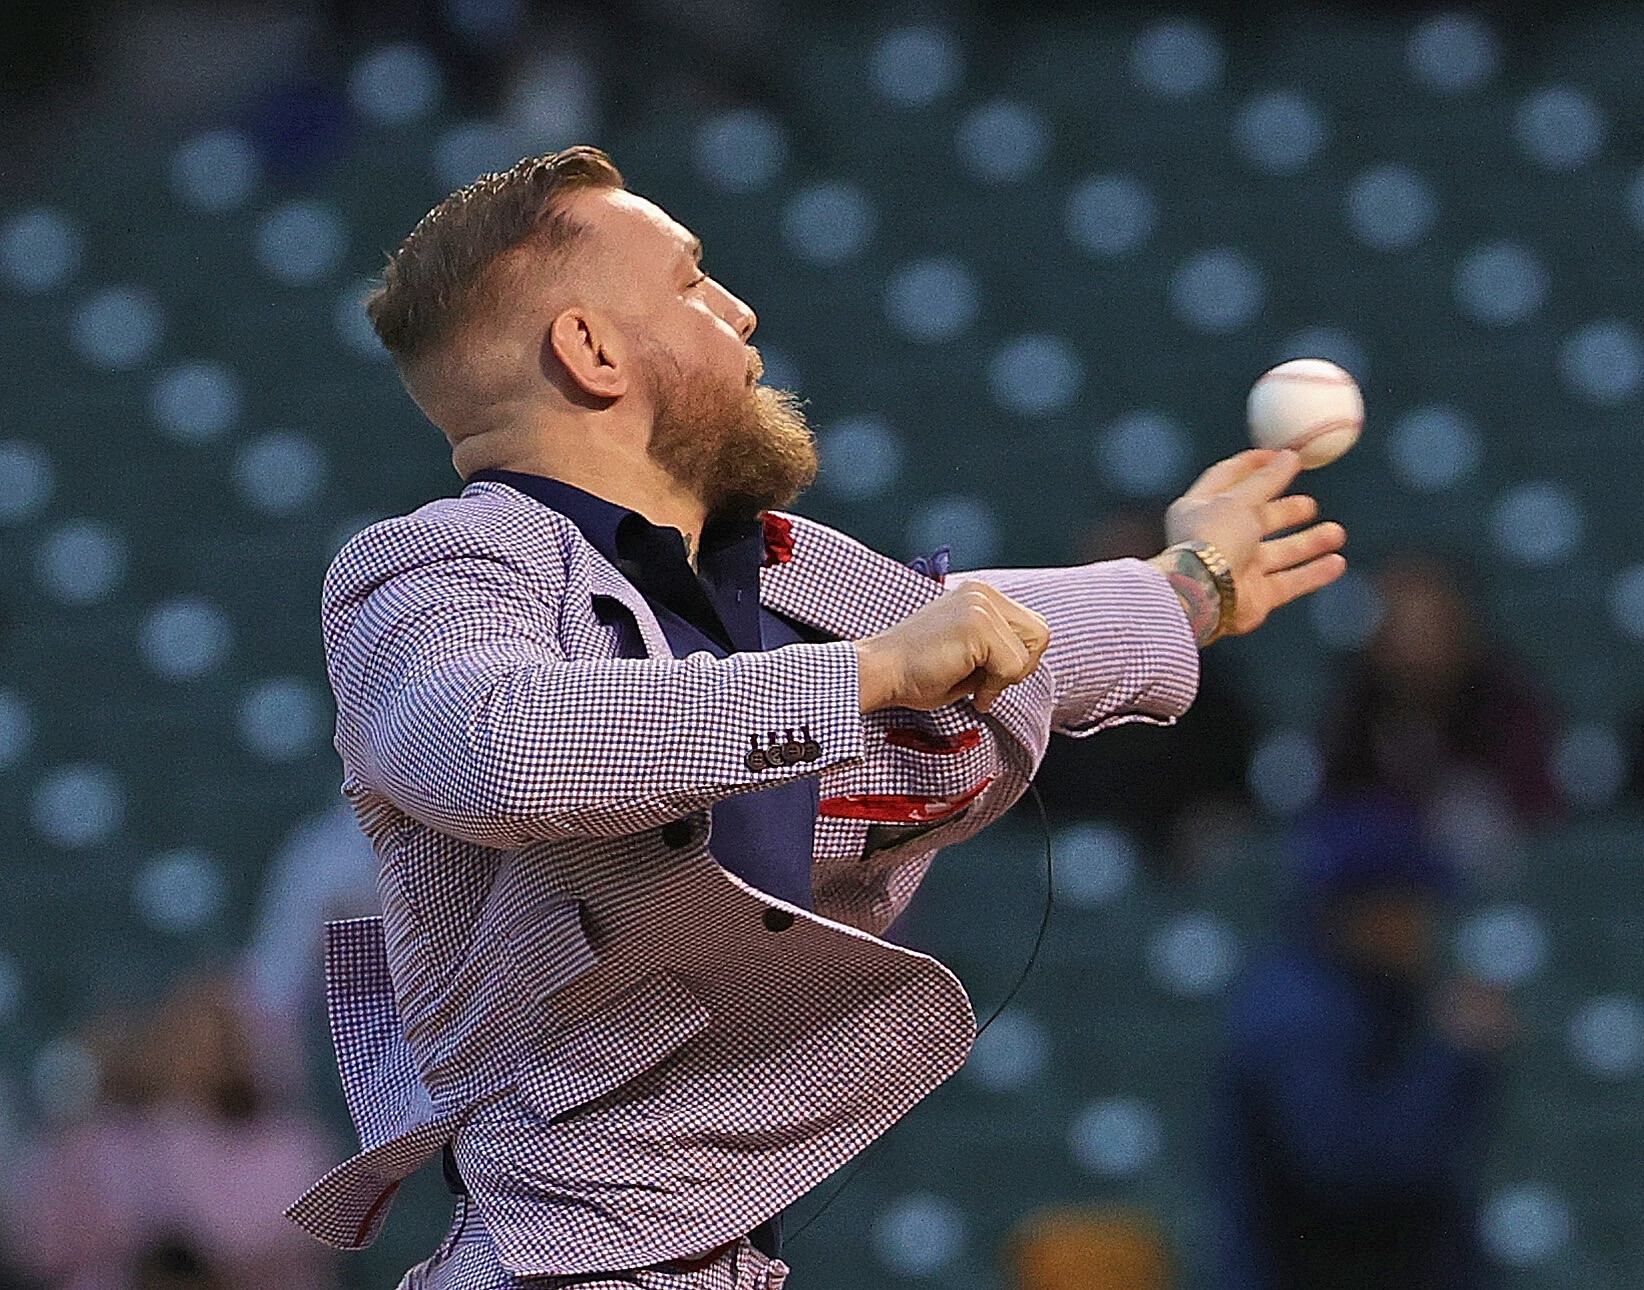 Conor McGregor's ceremonial first pitch at the Cubs game was … out there